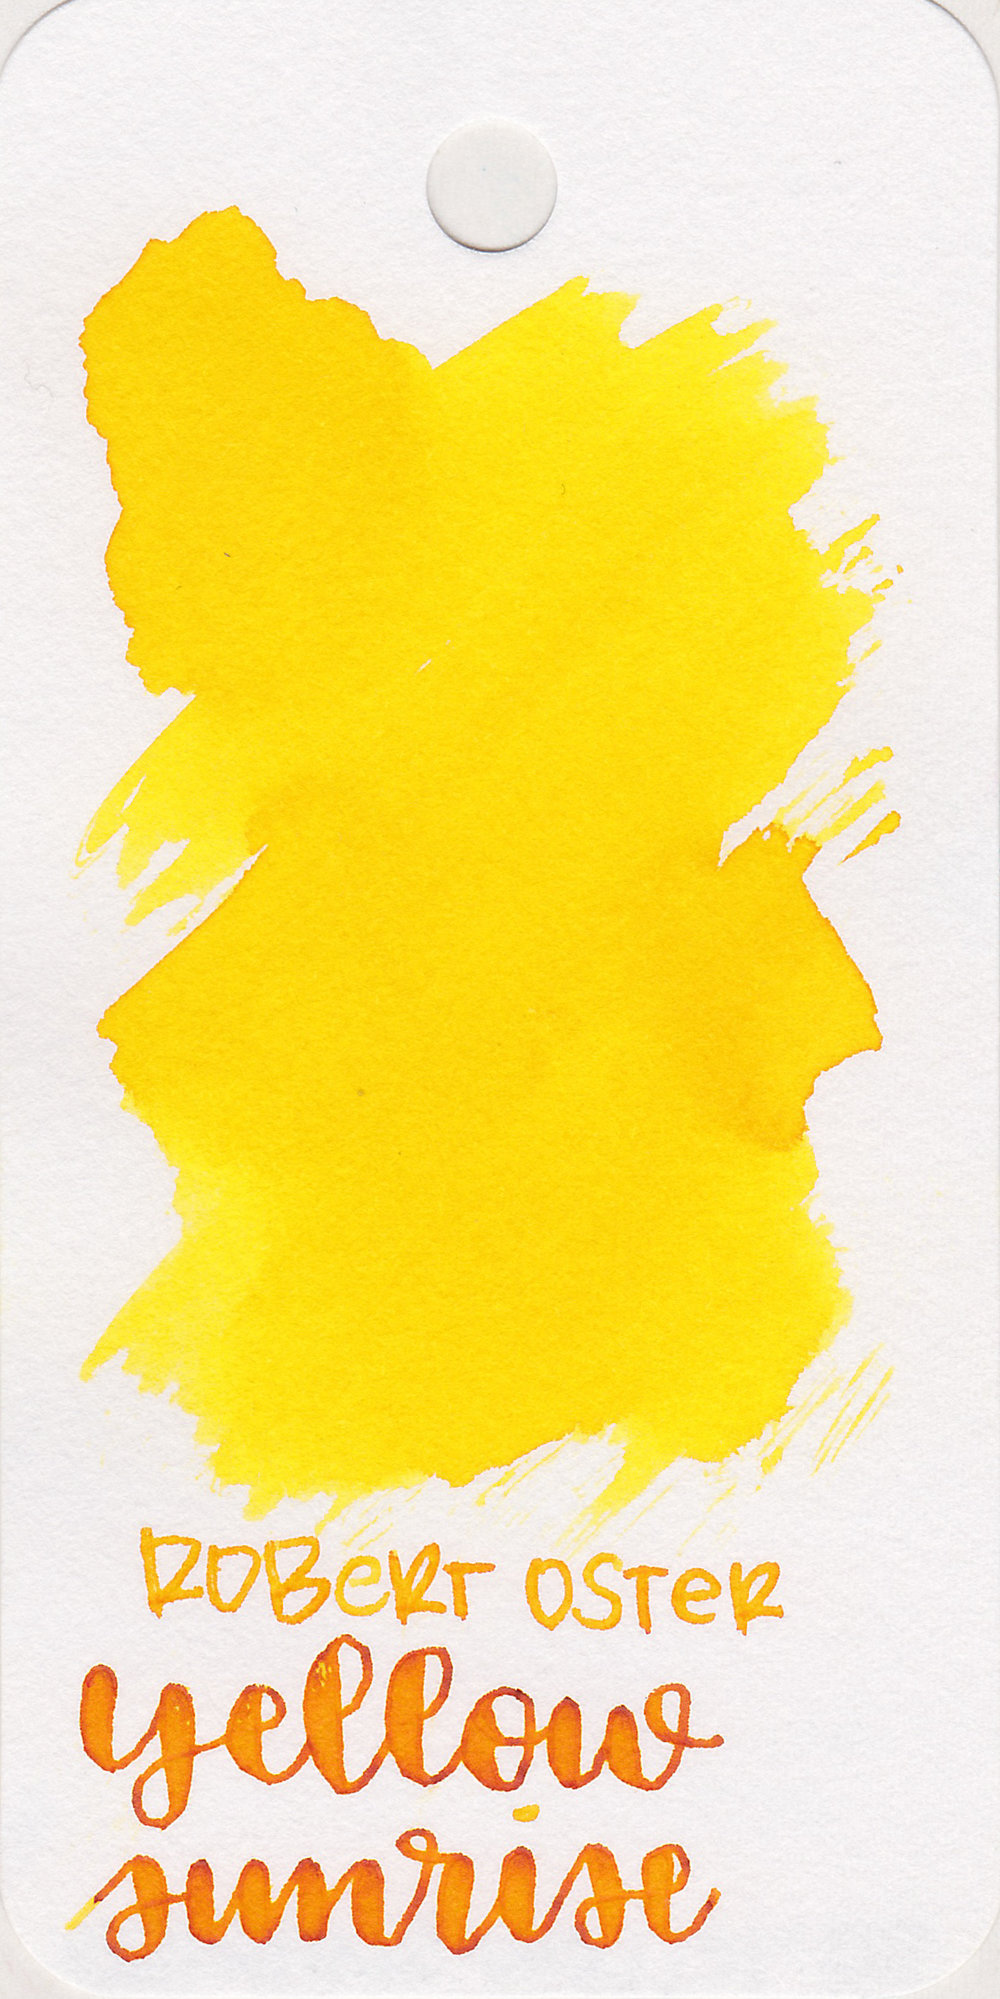 The color: - Yellow Sunrise ranges from bright yellow to a yellow-orange.